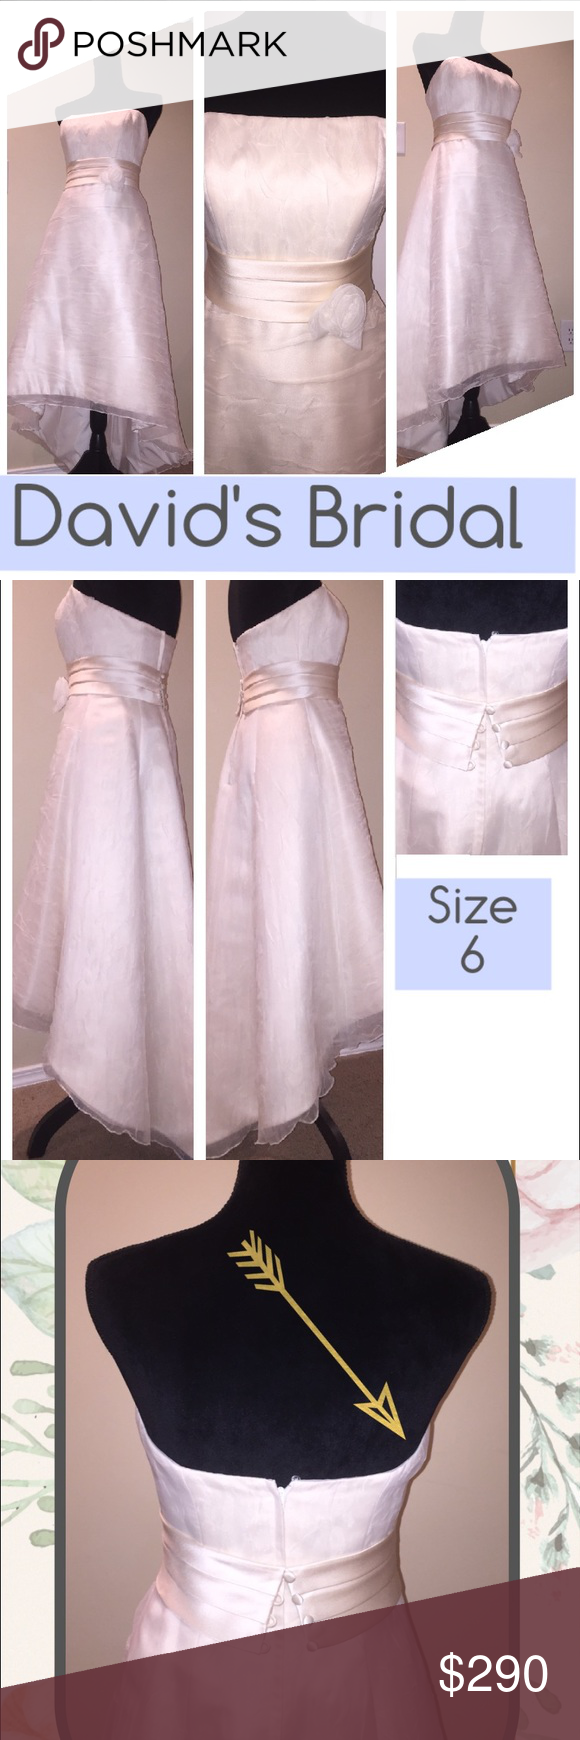 "David's Bridal hi/low wedding gown - Size 6 Wedding dress - Size 6 Color: ivory/off white Style: Hi/Low Front length from waist: 28"" Back length from waist: 42"" Best fits height 5.1""-5.6"" and Bra size 34B/34C. Depending how far you want the dress from the floor. Belt 3""W sewn to the dress Defect: A little detail on the right side (photo 3)  $765 with alterations David's Bridal Dresses Wedding"